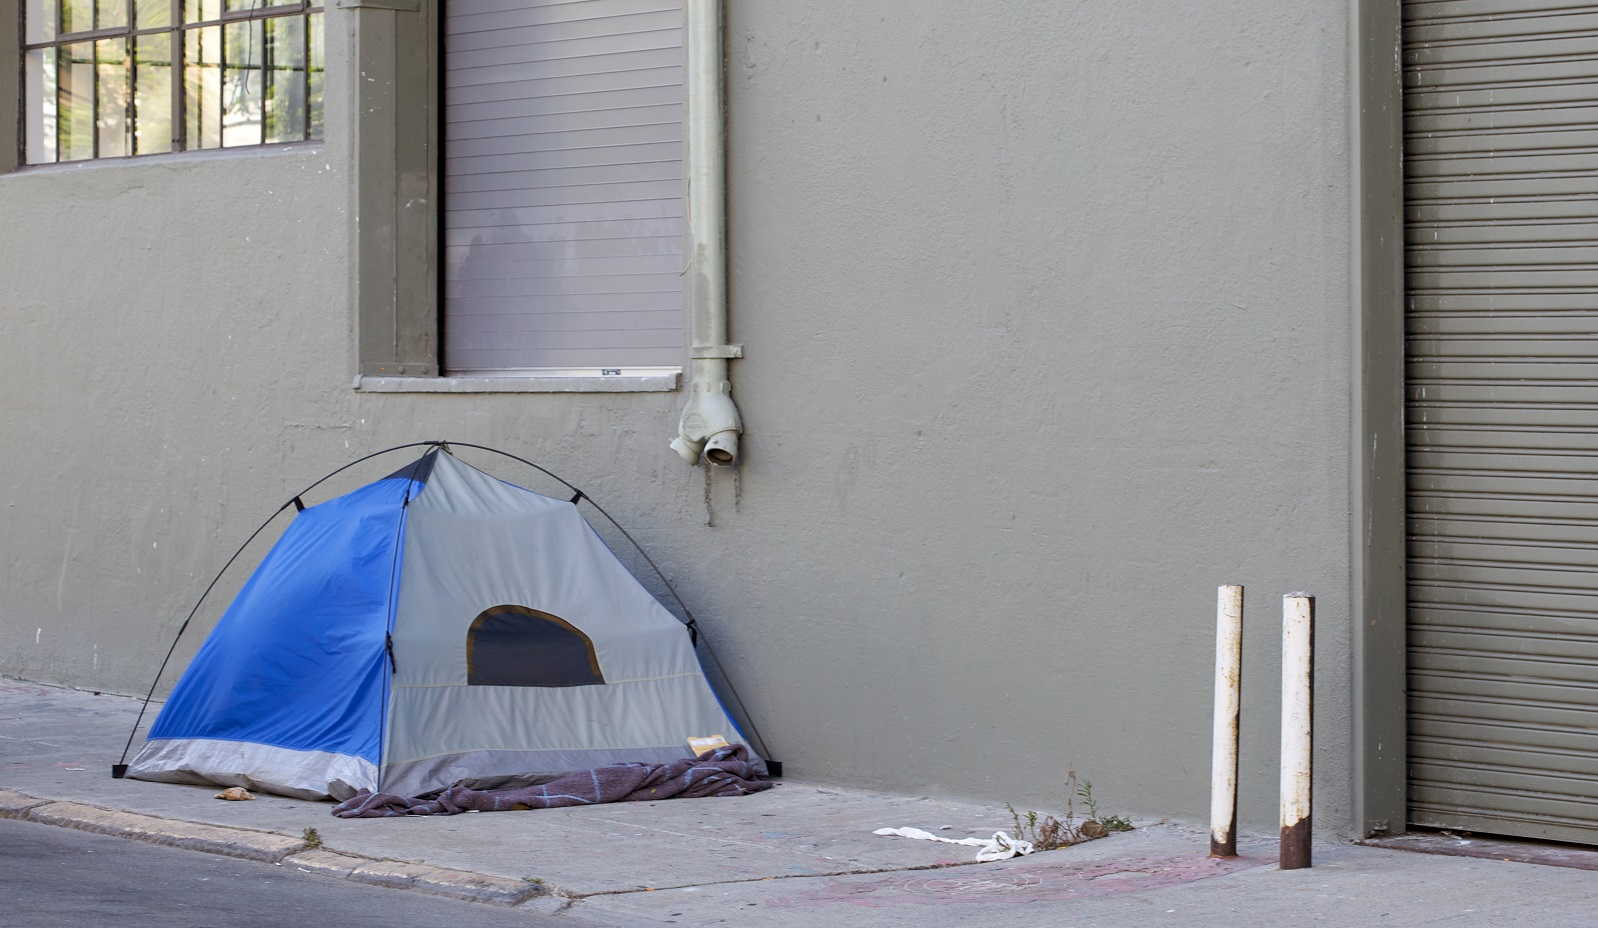 Why are so many Americans living in dire poverty?